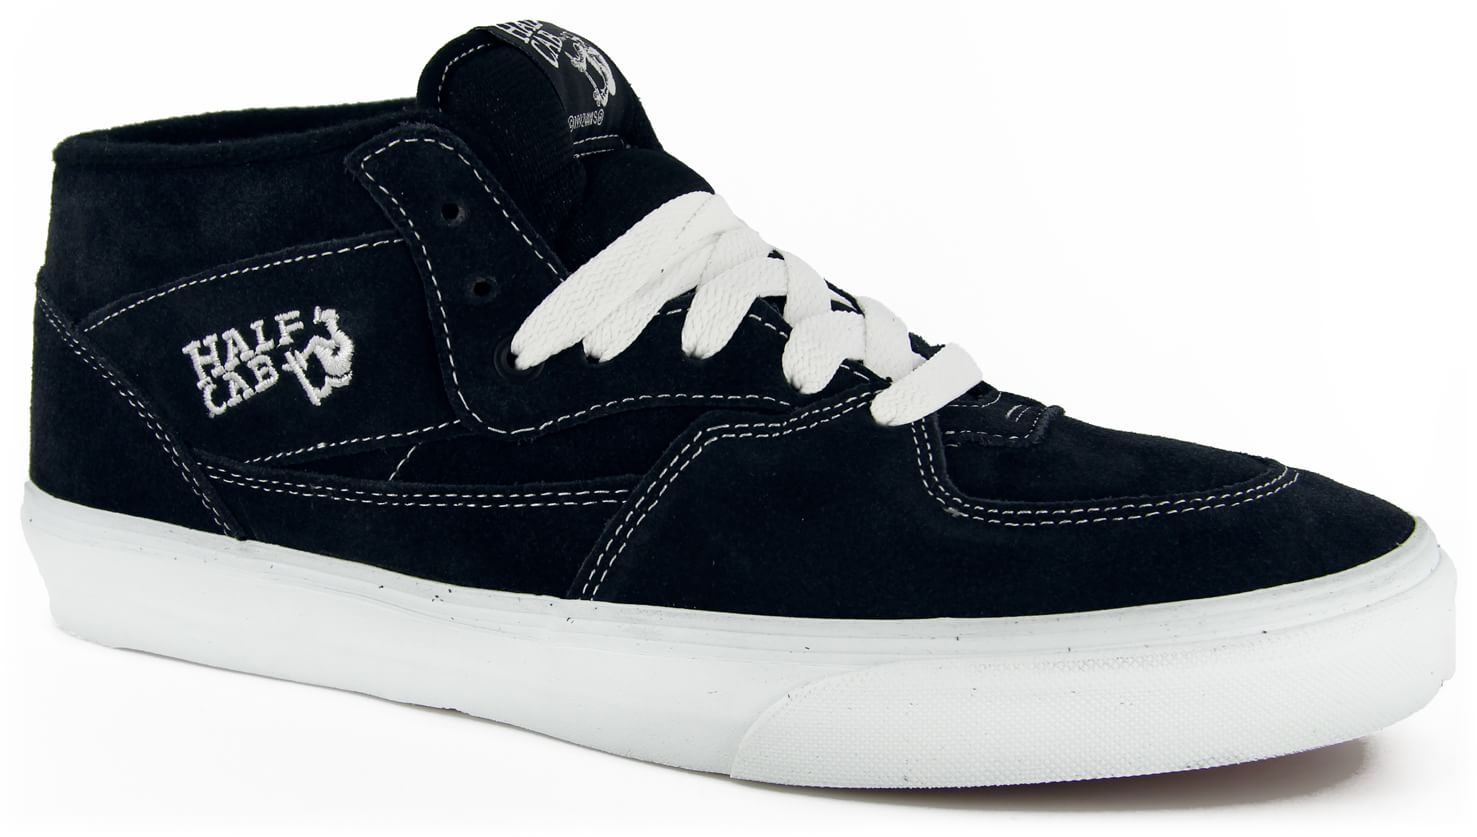 10 Skate Shoes You Shouldn't Have Slept On in 2012